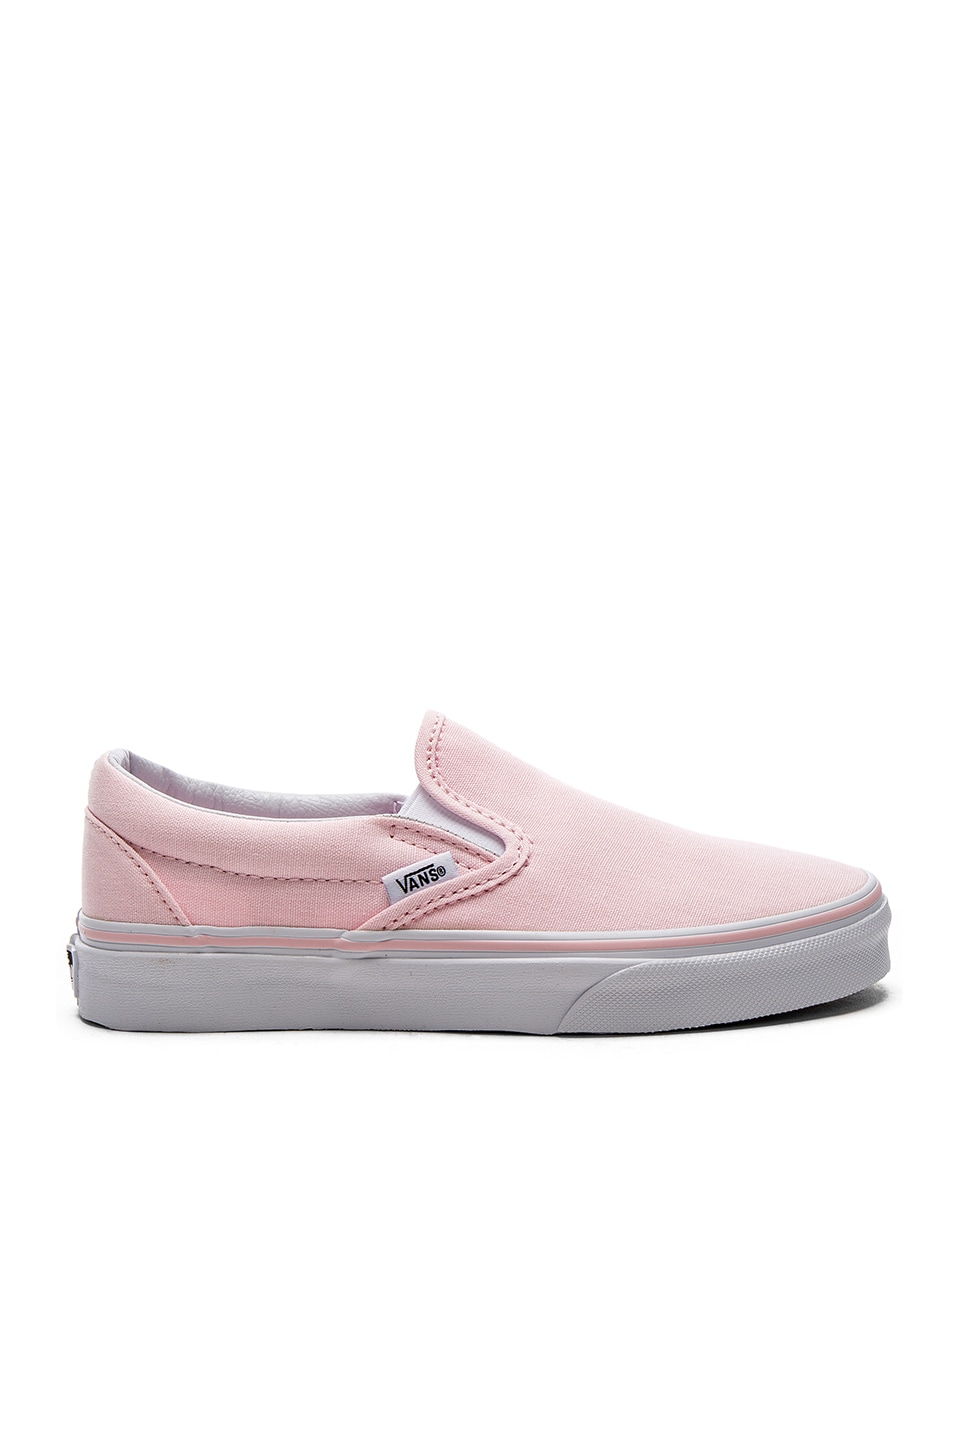 Vans Classic Slip-On in Ballerina & True White